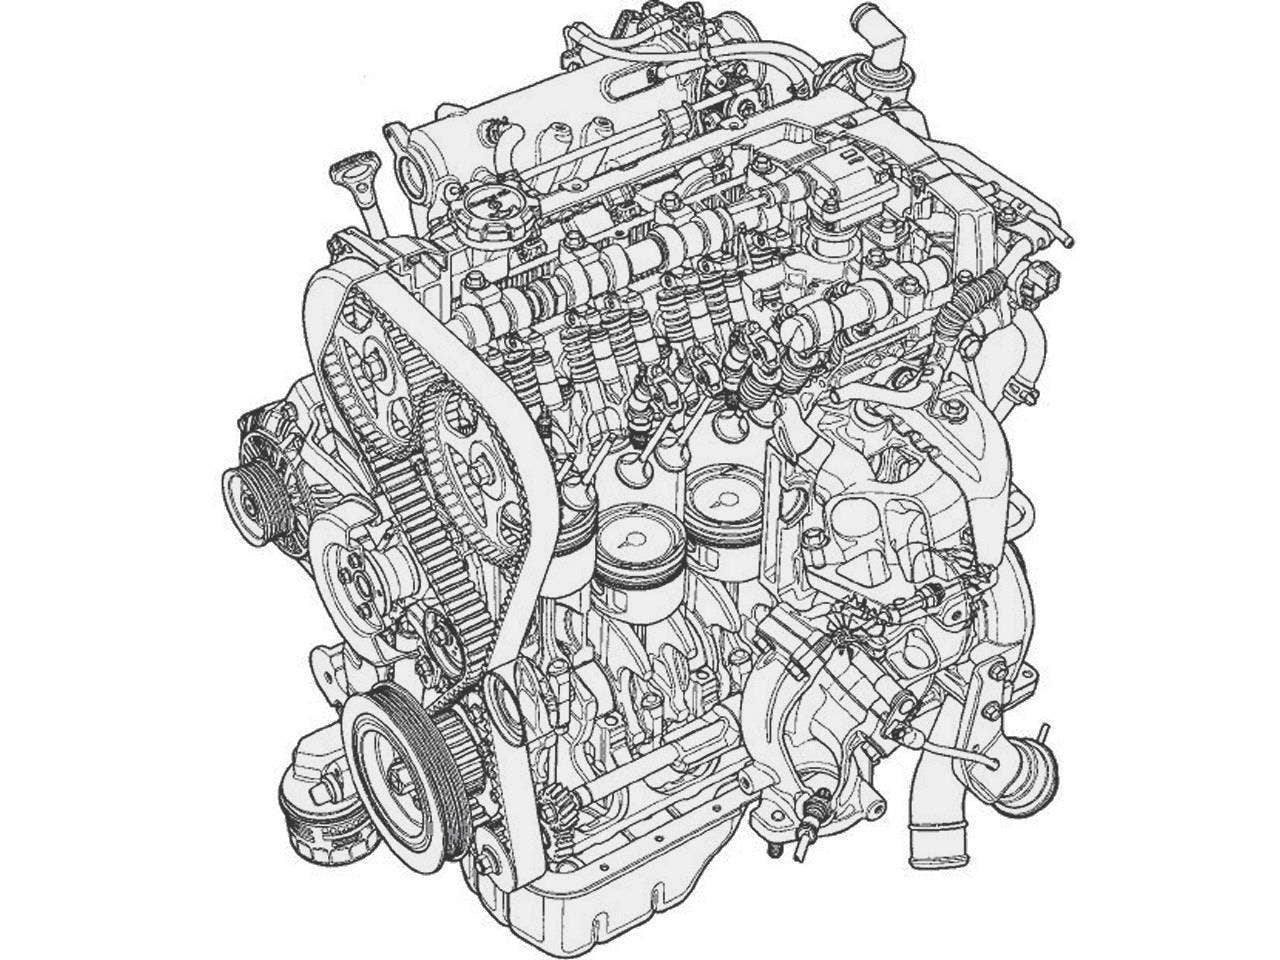 Mitsubishi 4g63 Engine Guide